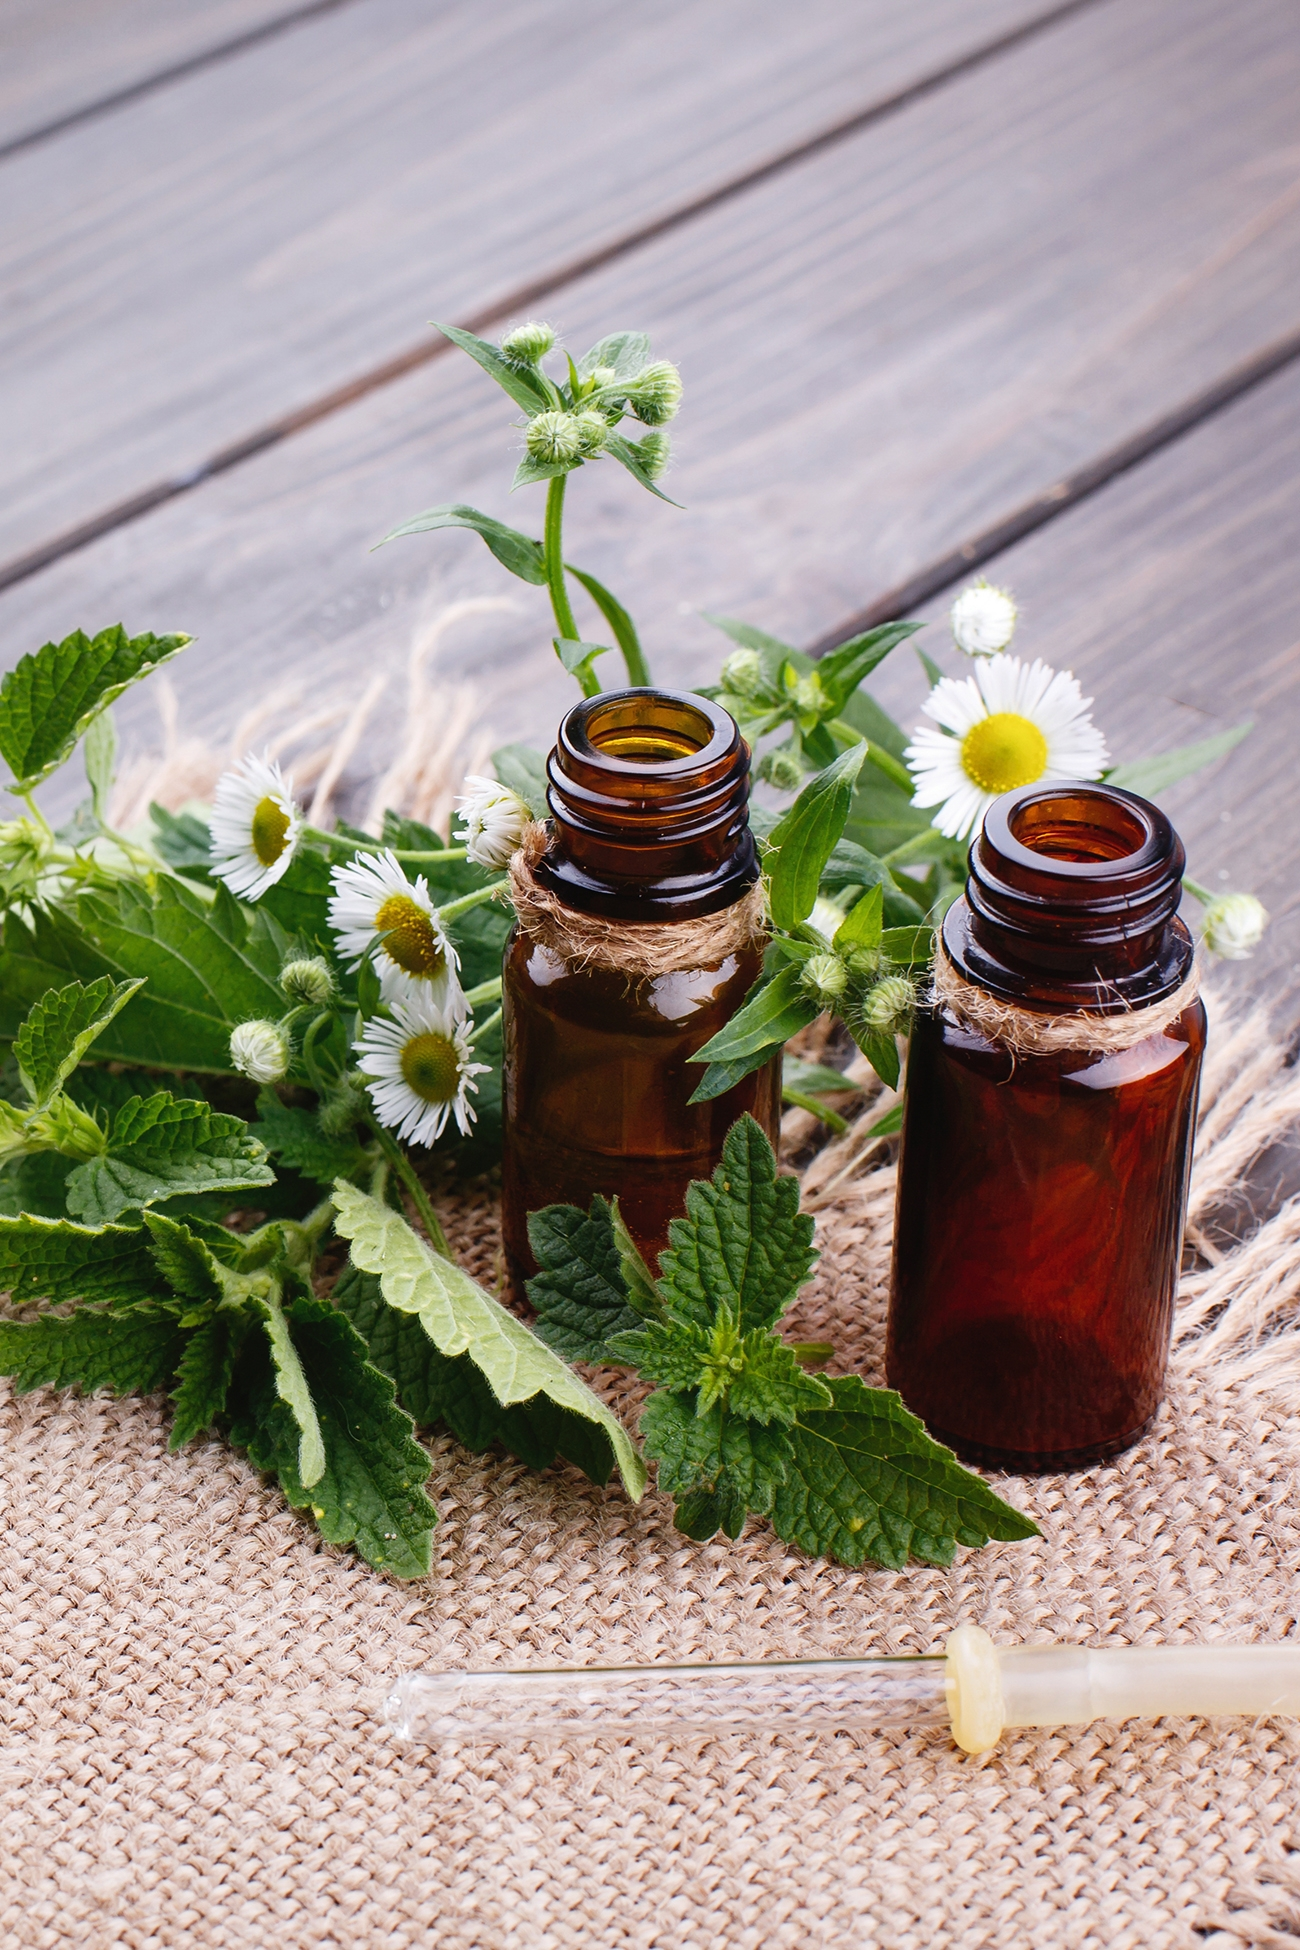 Homeoprophylaxis (and various Prophylaxis) from the desk of a homeopath and naturopath